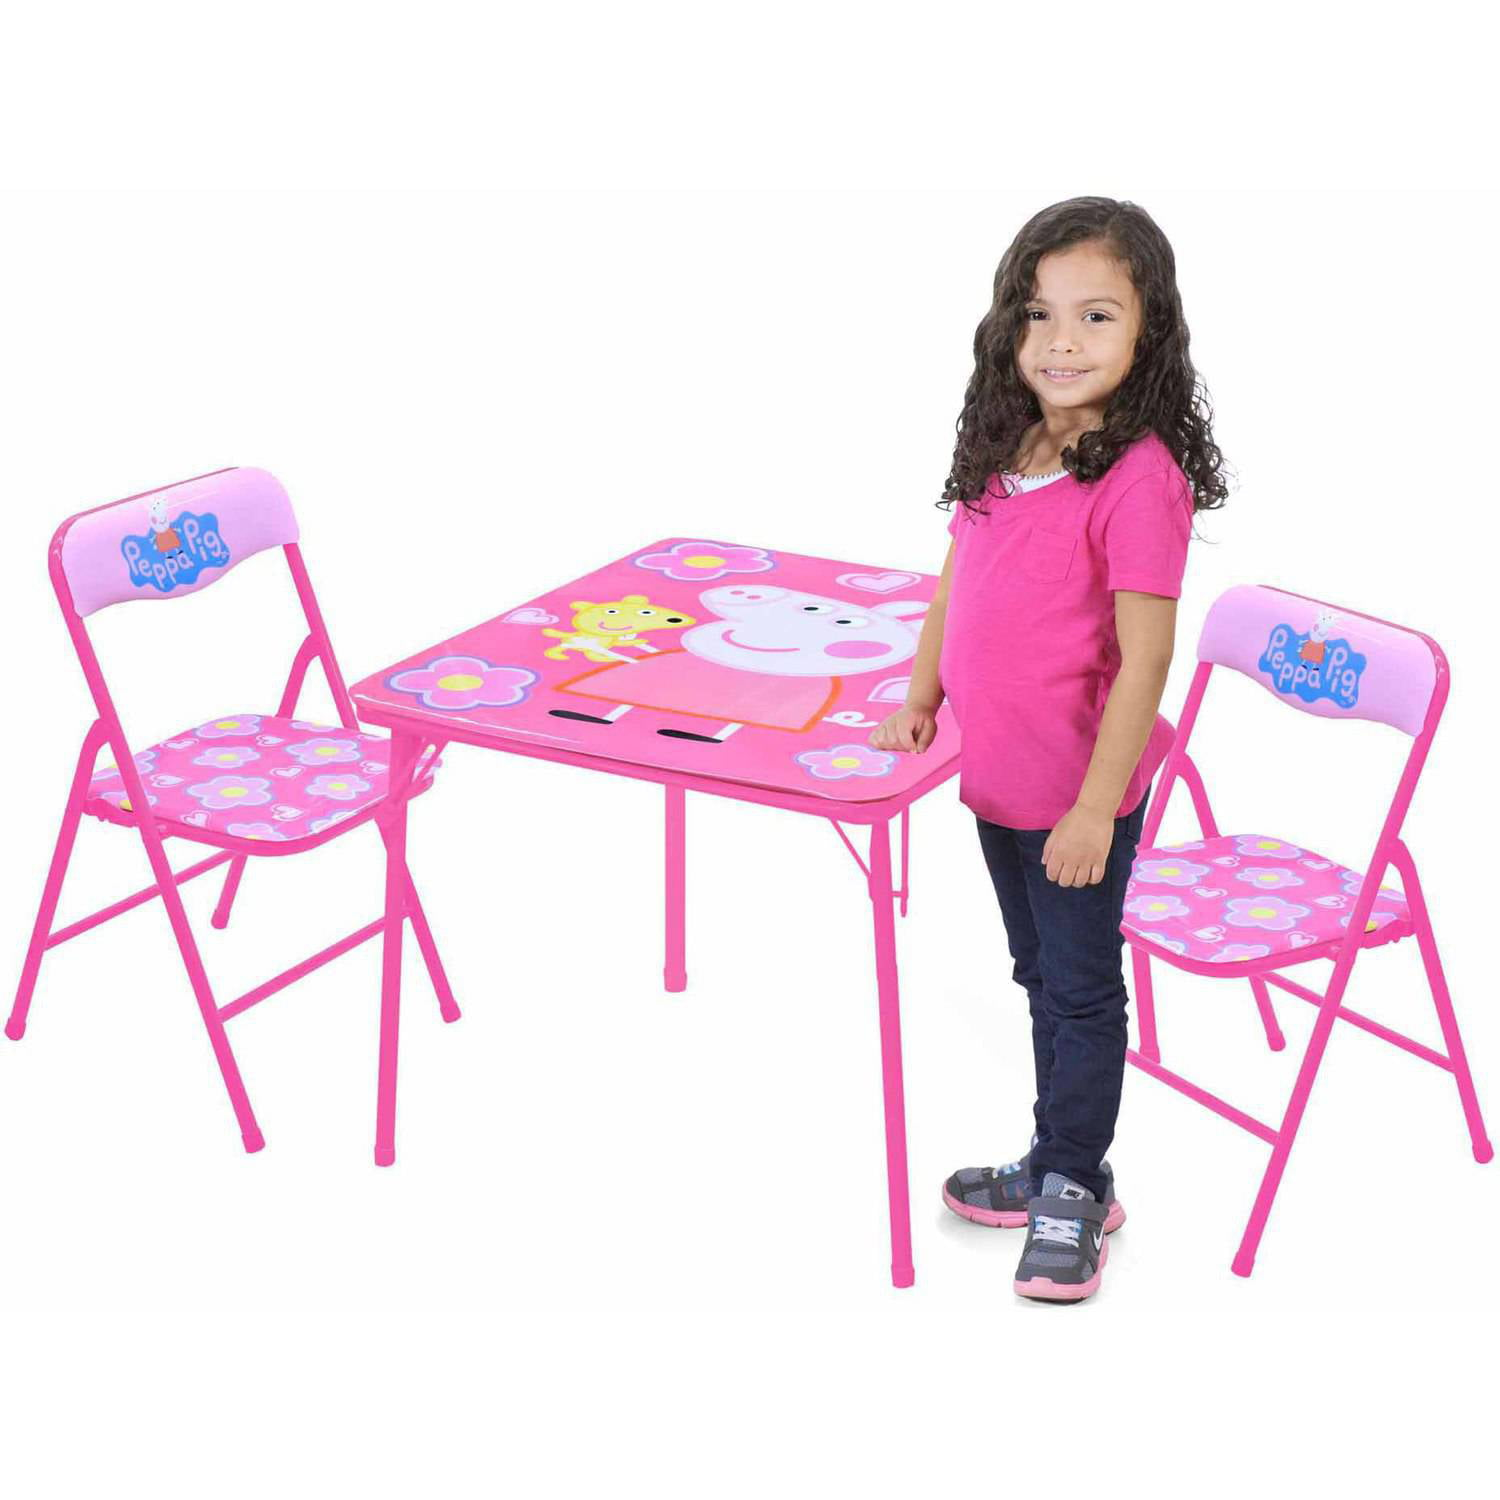 sc 1 st  Walmart : kids character table and chair set - pezcame.com